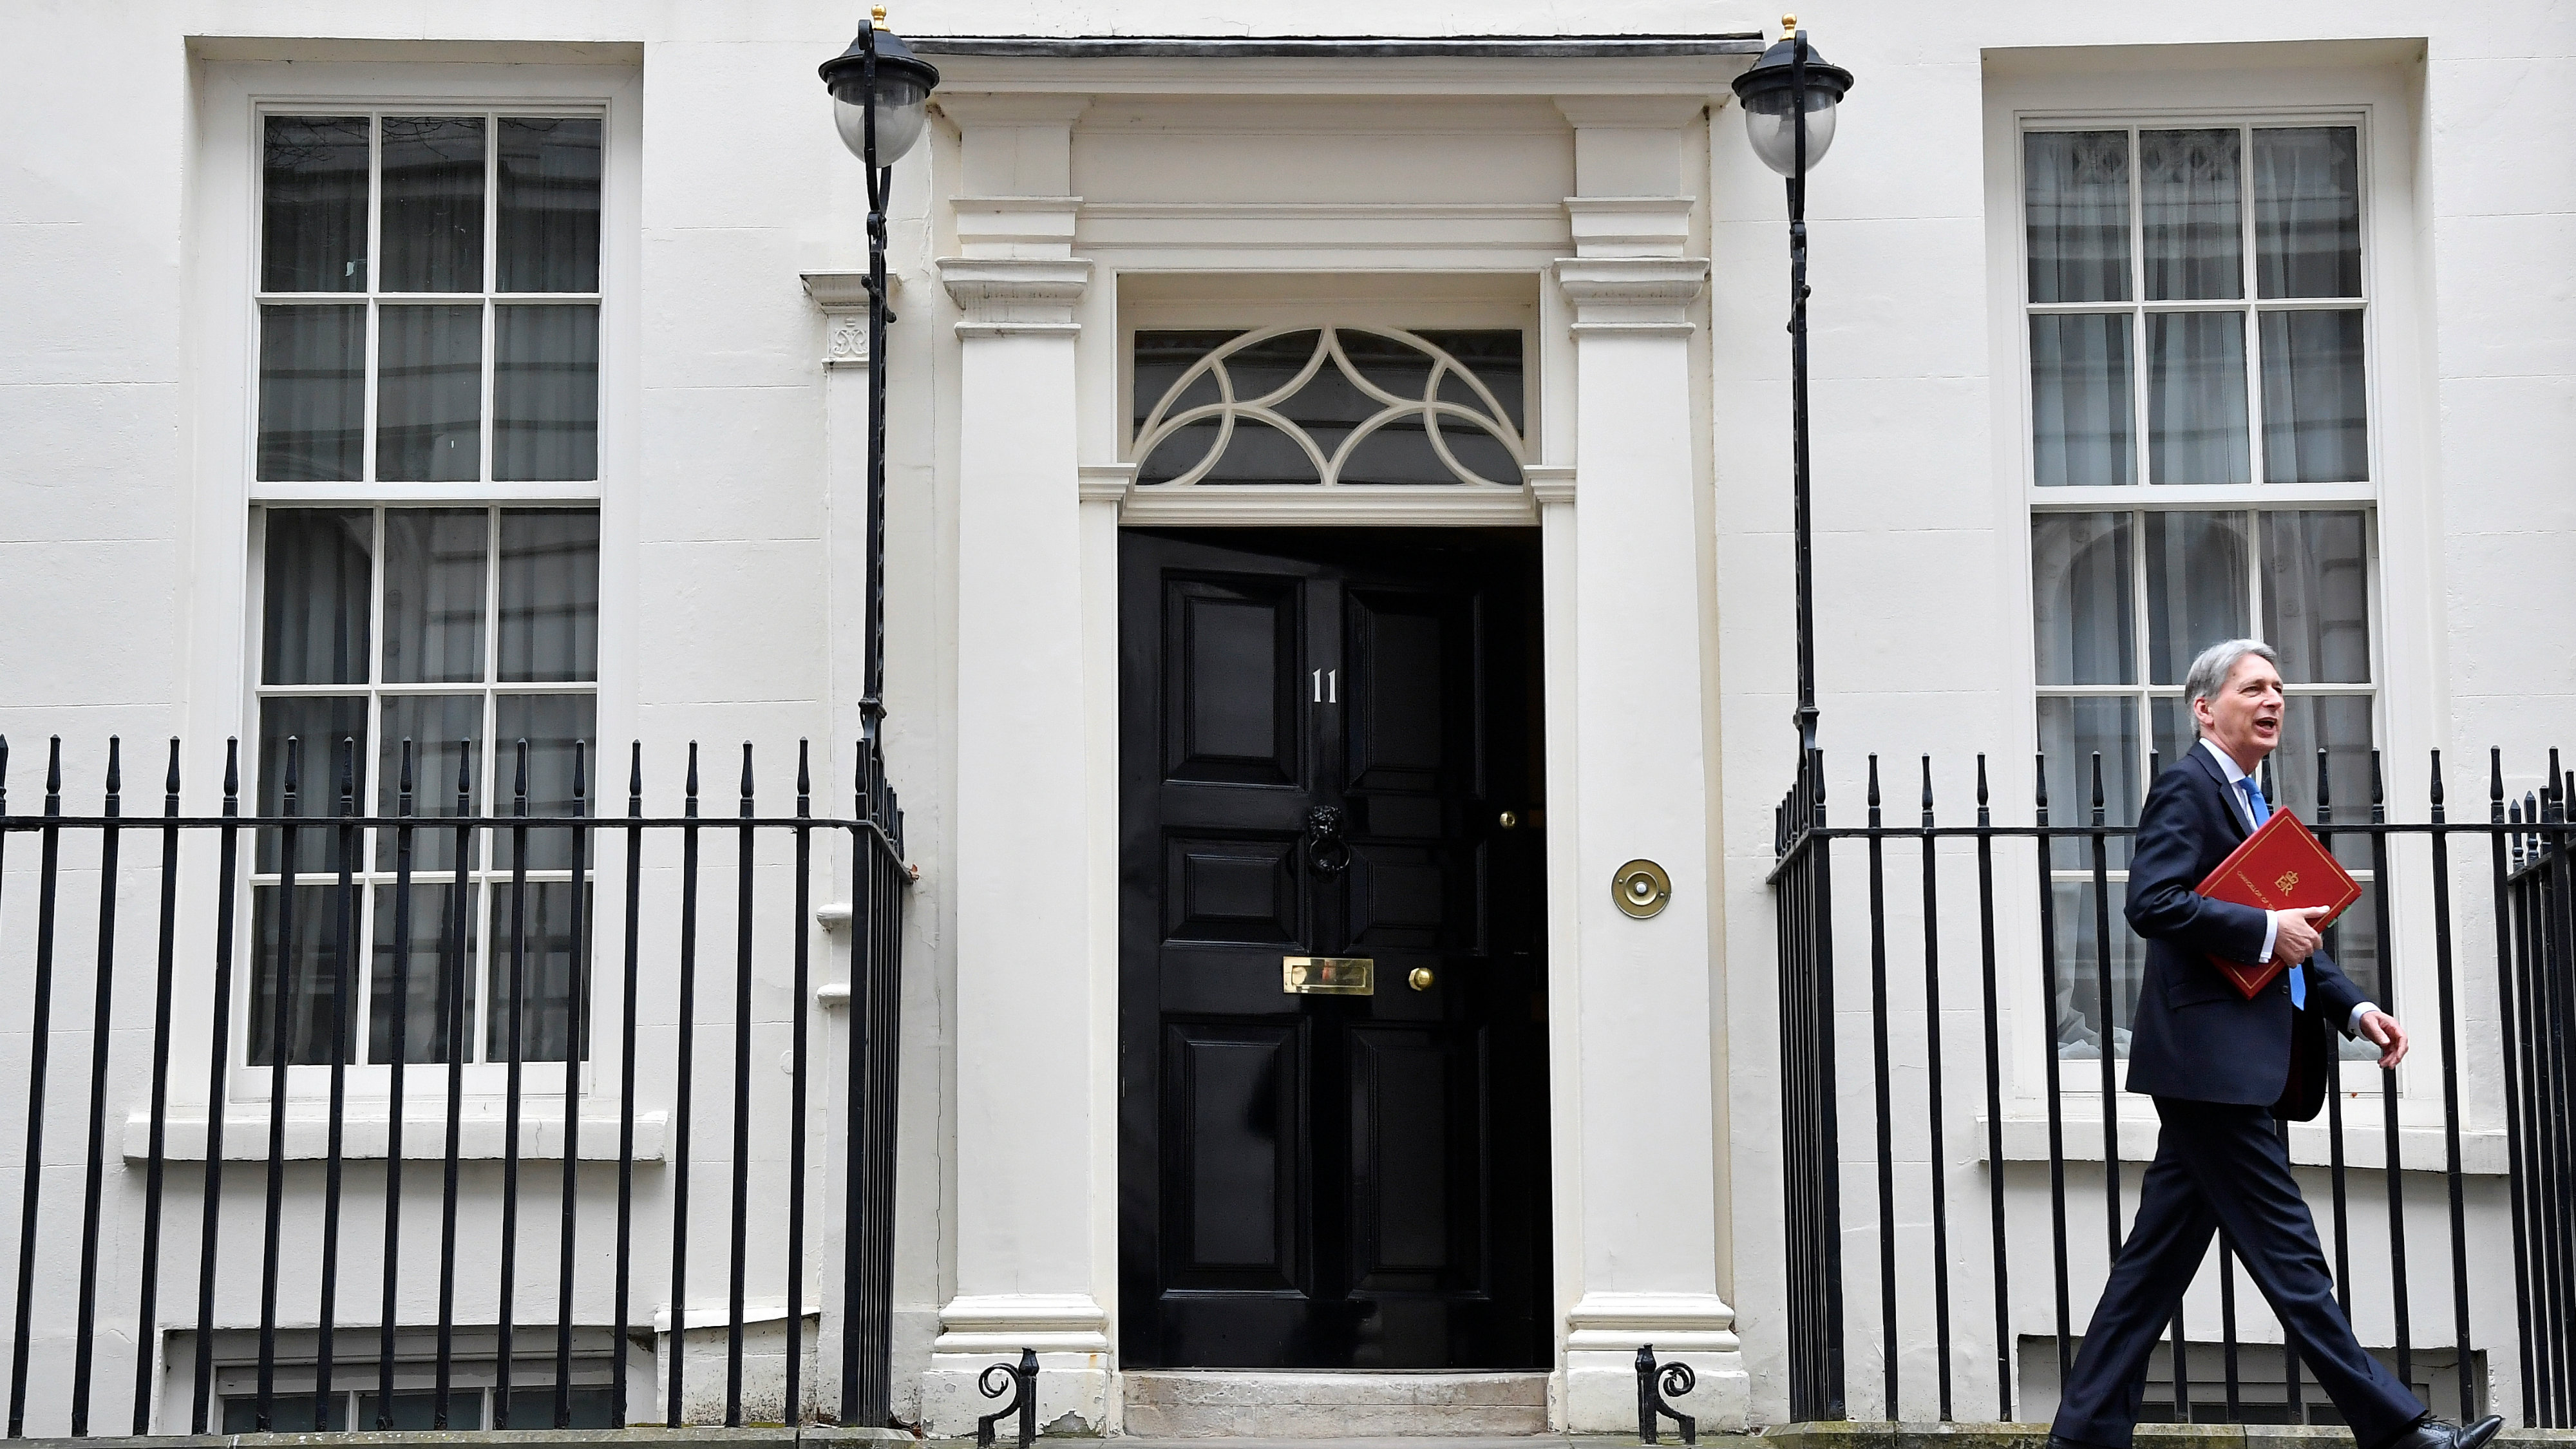 Britain's Chancellor of the Exchequer Philip Hammond leaves 11 Downing Street to deliver his half-yearly update on the public finance